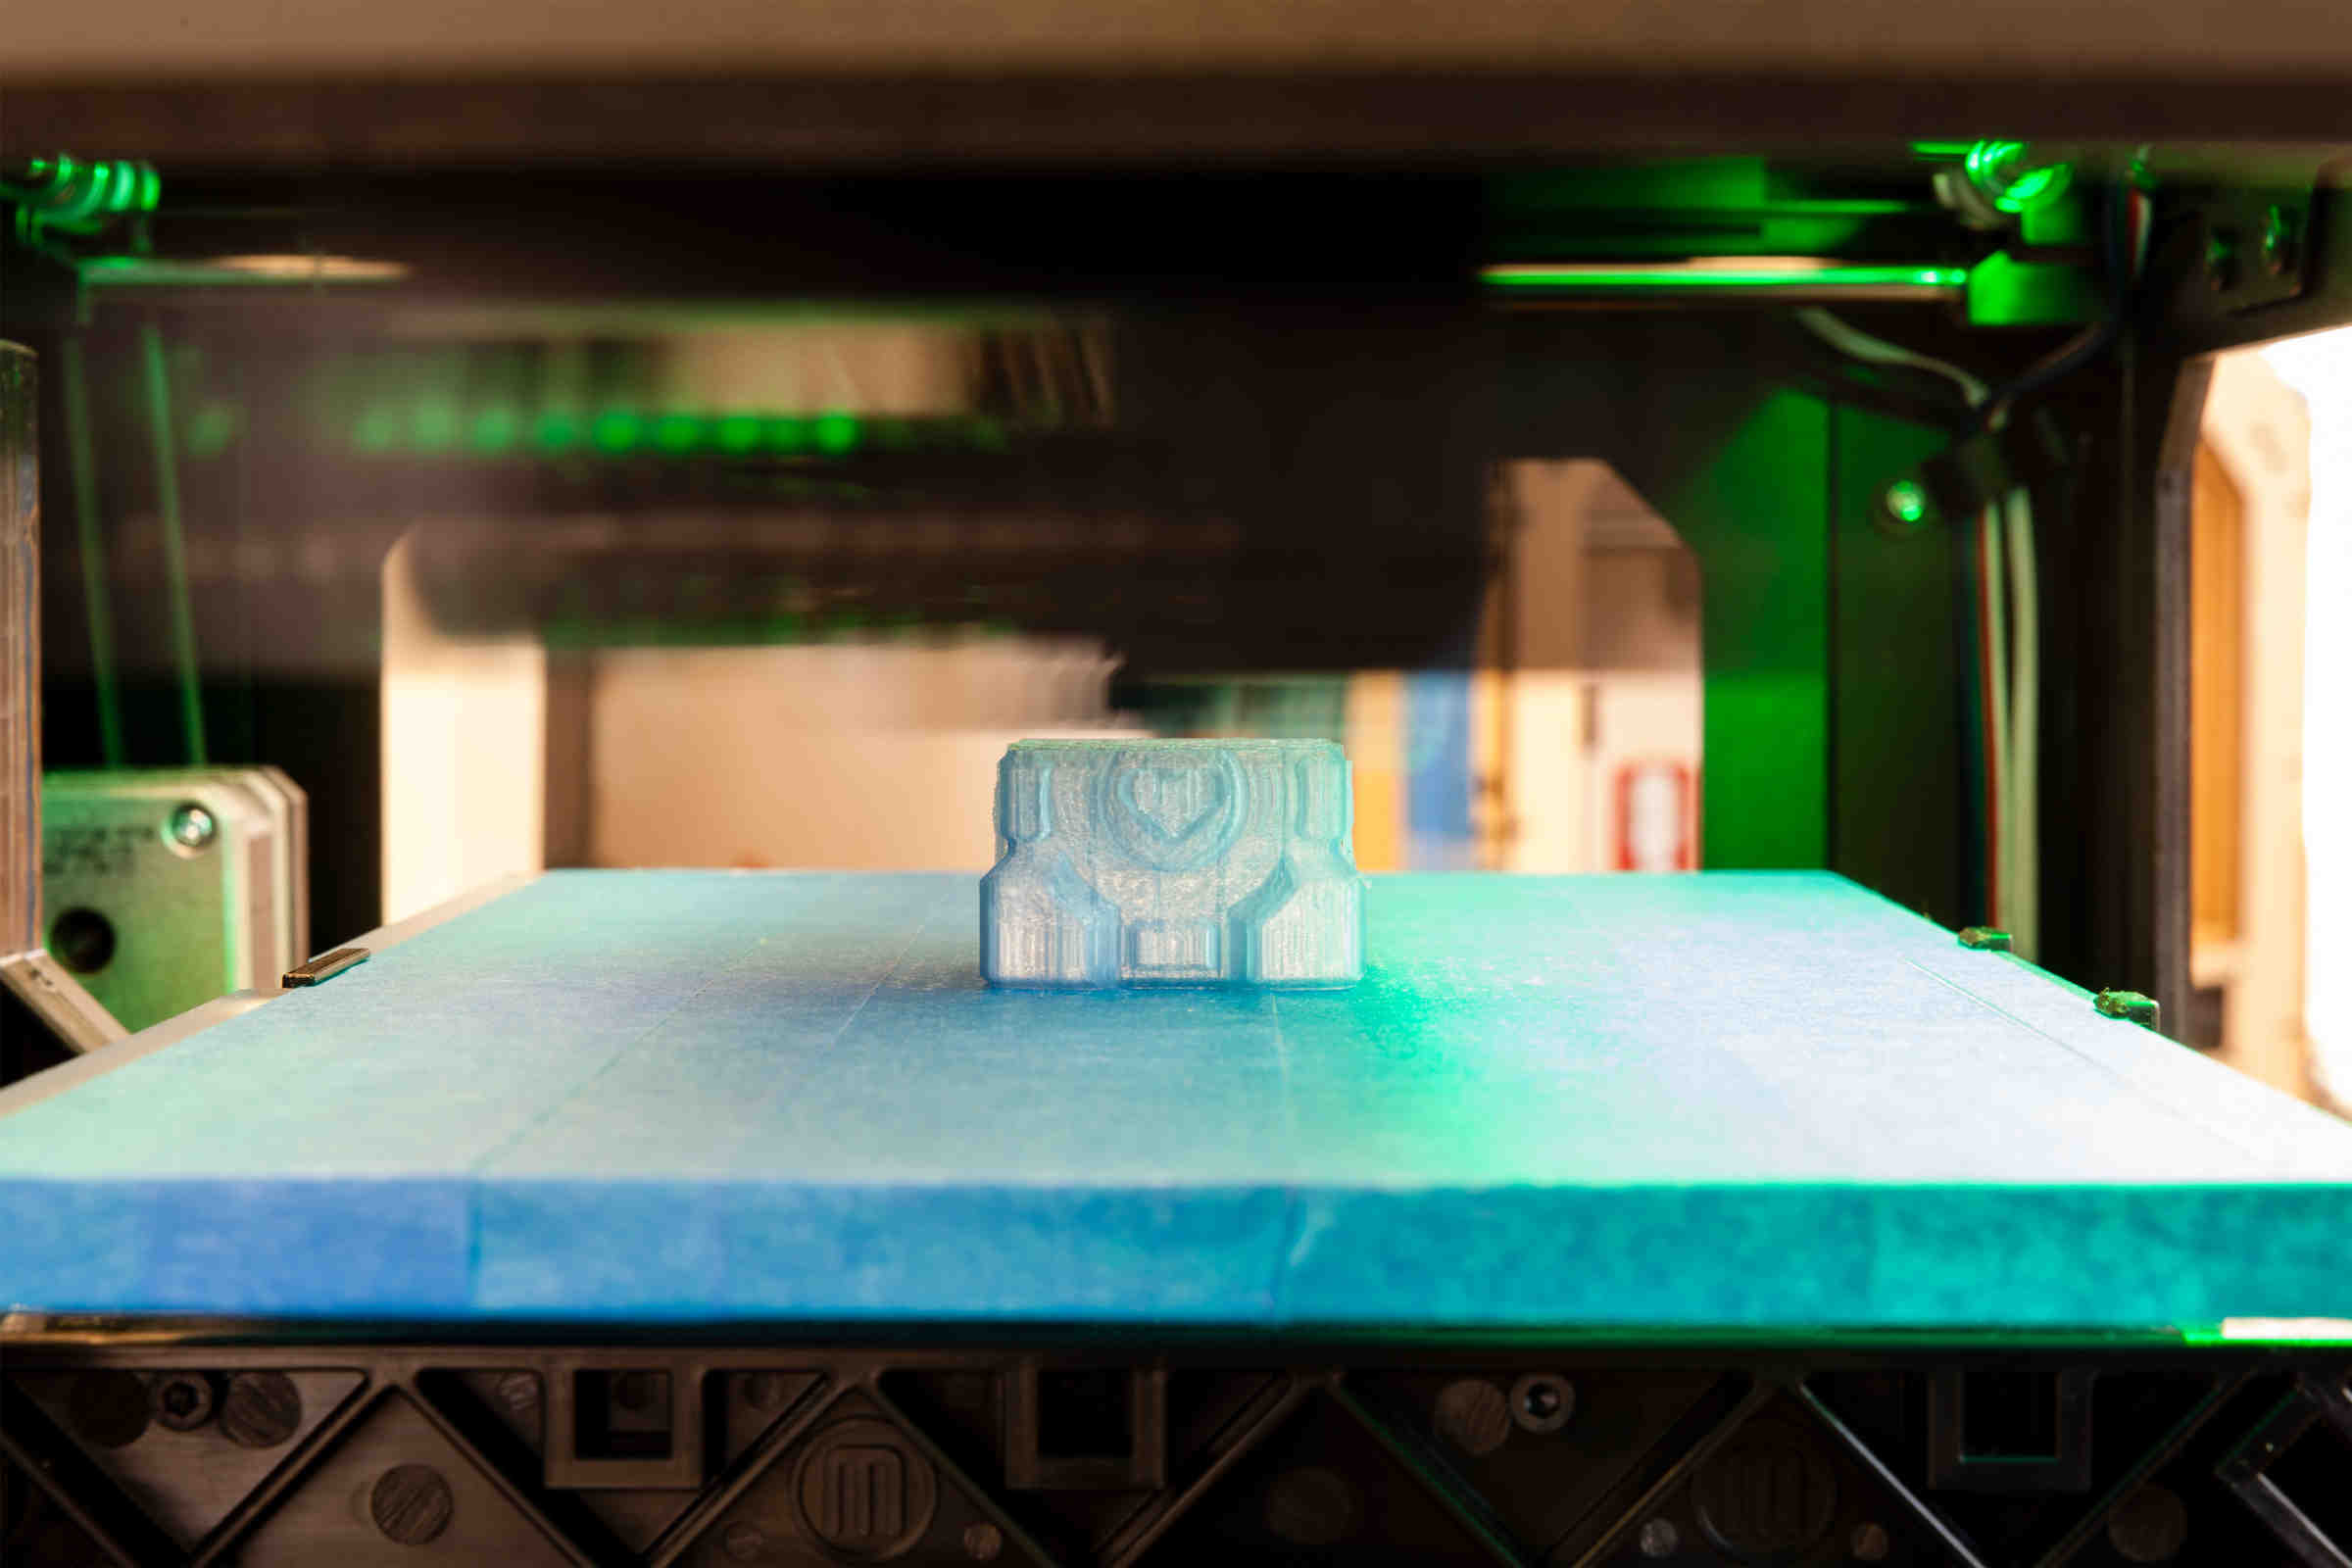 [Default image] Makerspace printing in process